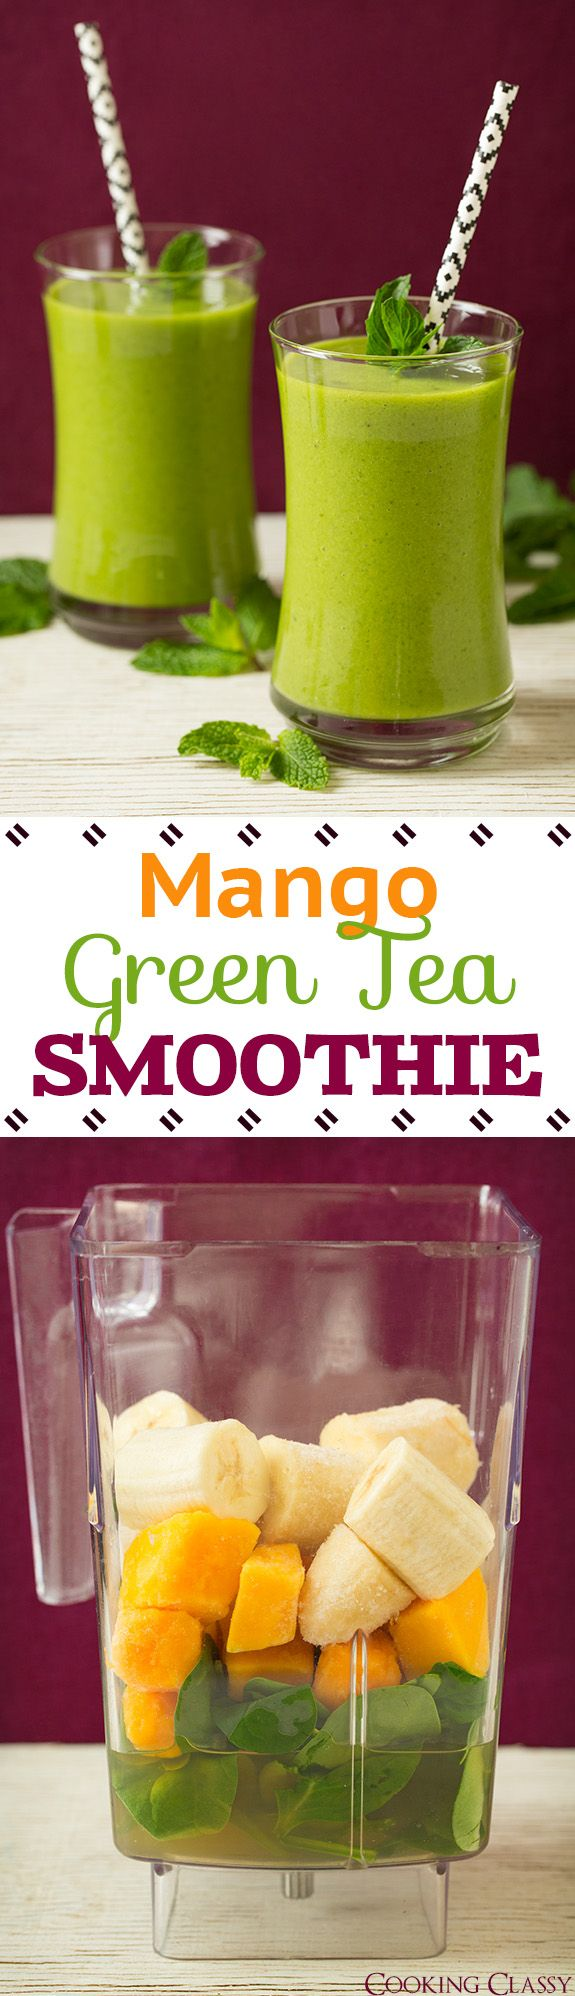 Mango Green Tea Smoothie - vibrant, refreshing and so good!! With the benefits of green tea I'll be making this one all the time! | Mango Skin and Health Benefits @purefiji